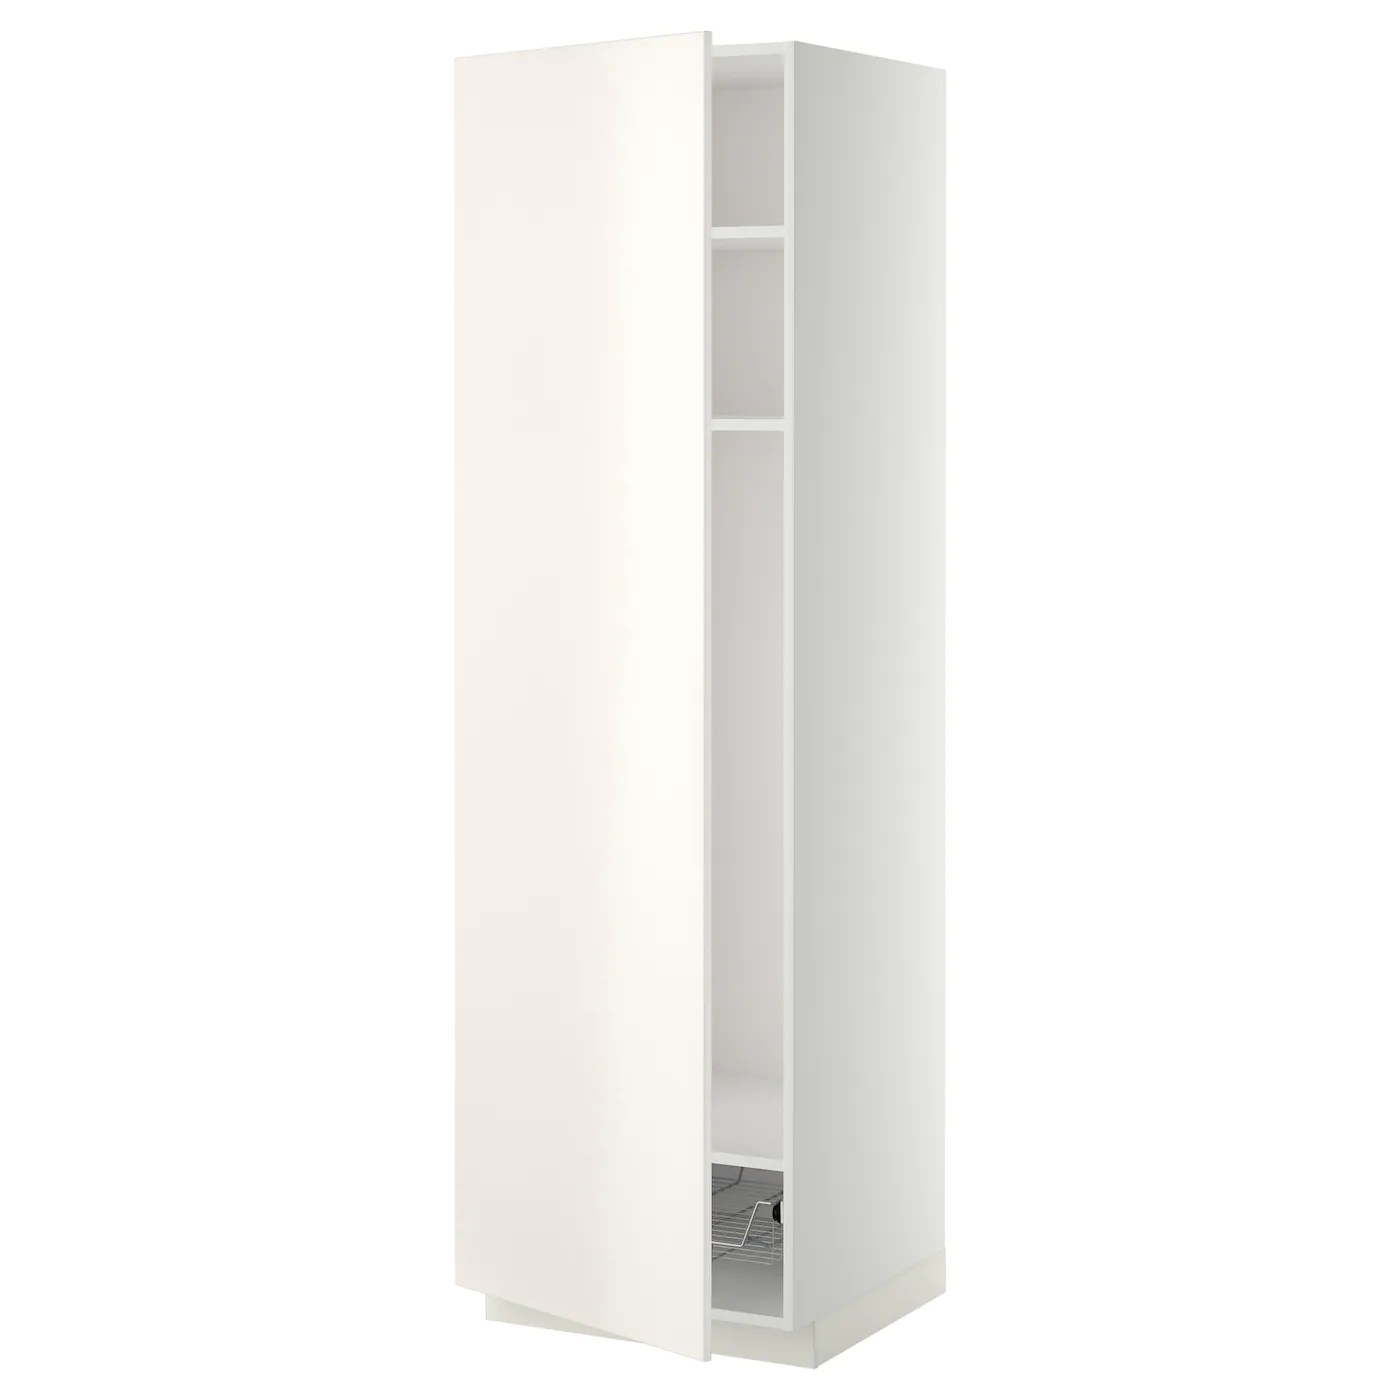 Veddinge Küche Weiß Metod High Cabinet W Shelves Wire Basket White Veddinge